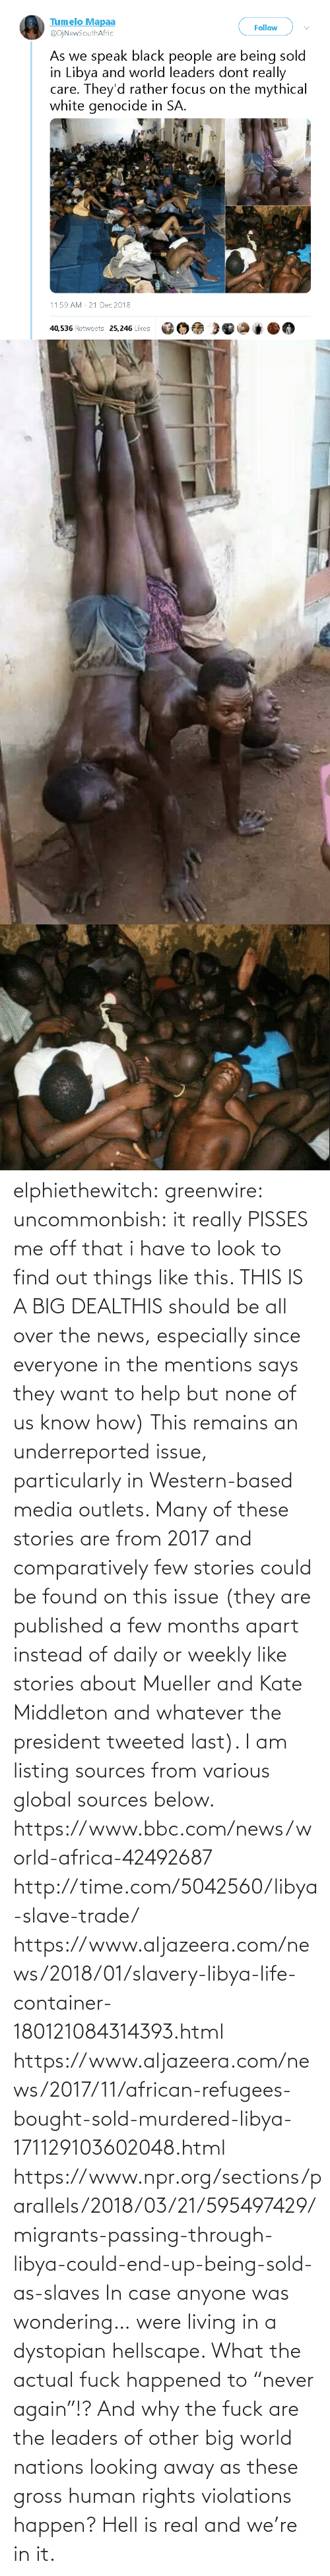 "Rights: elphiethewitch: greenwire:  uncommonbish:  it really PISSES me off that i have to look to find out things like this. THIS IS A BIG DEALTHIS should be all over the news, especially since everyone in the mentions says they want to help but none of us know how)  This remains an underreported issue, particularly in Western-based media outlets. Many of these stories are from 2017 and comparatively few stories could be found on this issue (they are published a few months apart instead of daily or weekly like stories about Mueller and Kate Middleton and whatever the president tweeted last). I am listing sources from various global sources below.  https://www.bbc.com/news/world-africa-42492687 http://time.com/5042560/libya-slave-trade/ https://www.aljazeera.com/news/2018/01/slavery-libya-life-container-180121084314393.html https://www.aljazeera.com/news/2017/11/african-refugees-bought-sold-murdered-libya-171129103602048.html https://www.npr.org/sections/parallels/2018/03/21/595497429/migrants-passing-through-libya-could-end-up-being-sold-as-slaves   In case anyone was wondering… were living in a dystopian hellscape.  What the actual fuck happened to ""never again""!? And why the fuck are the leaders of other big world nations looking away as these gross human rights violations happen?  Hell is real and we're in it."